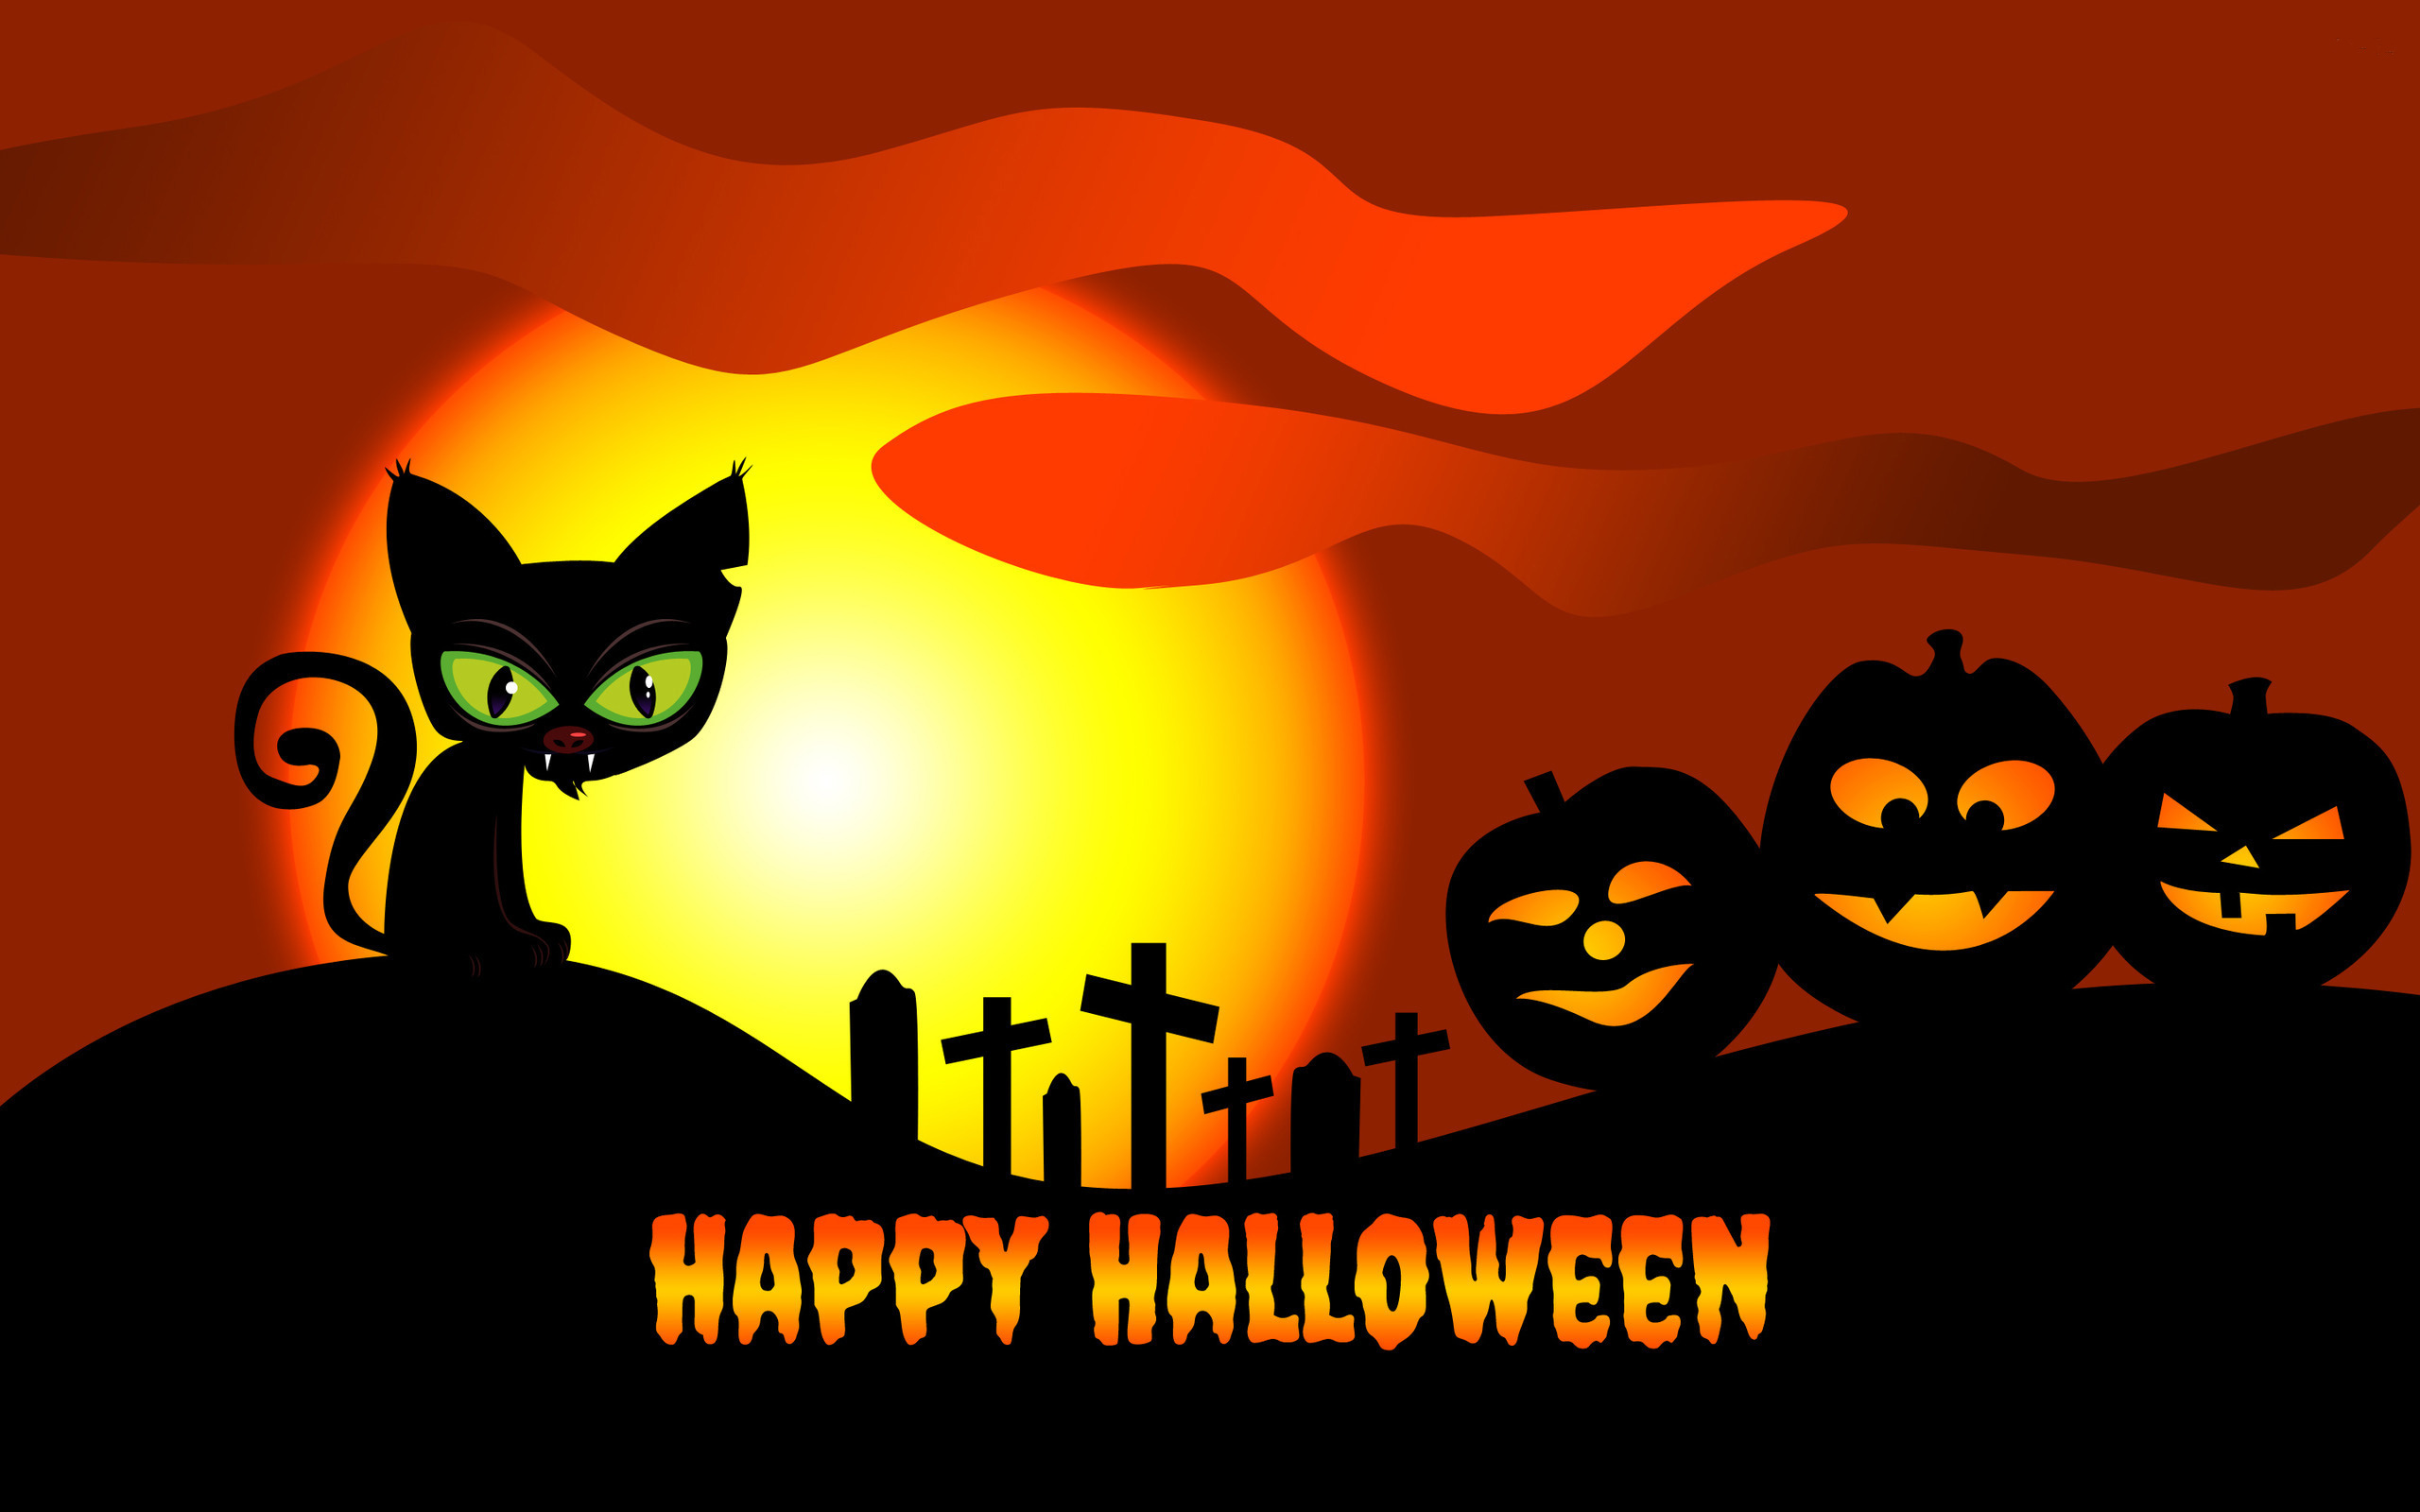 Hd Wallpaper Quotes Widescreen Download Free Hello Kitty Halloween Wallpapers